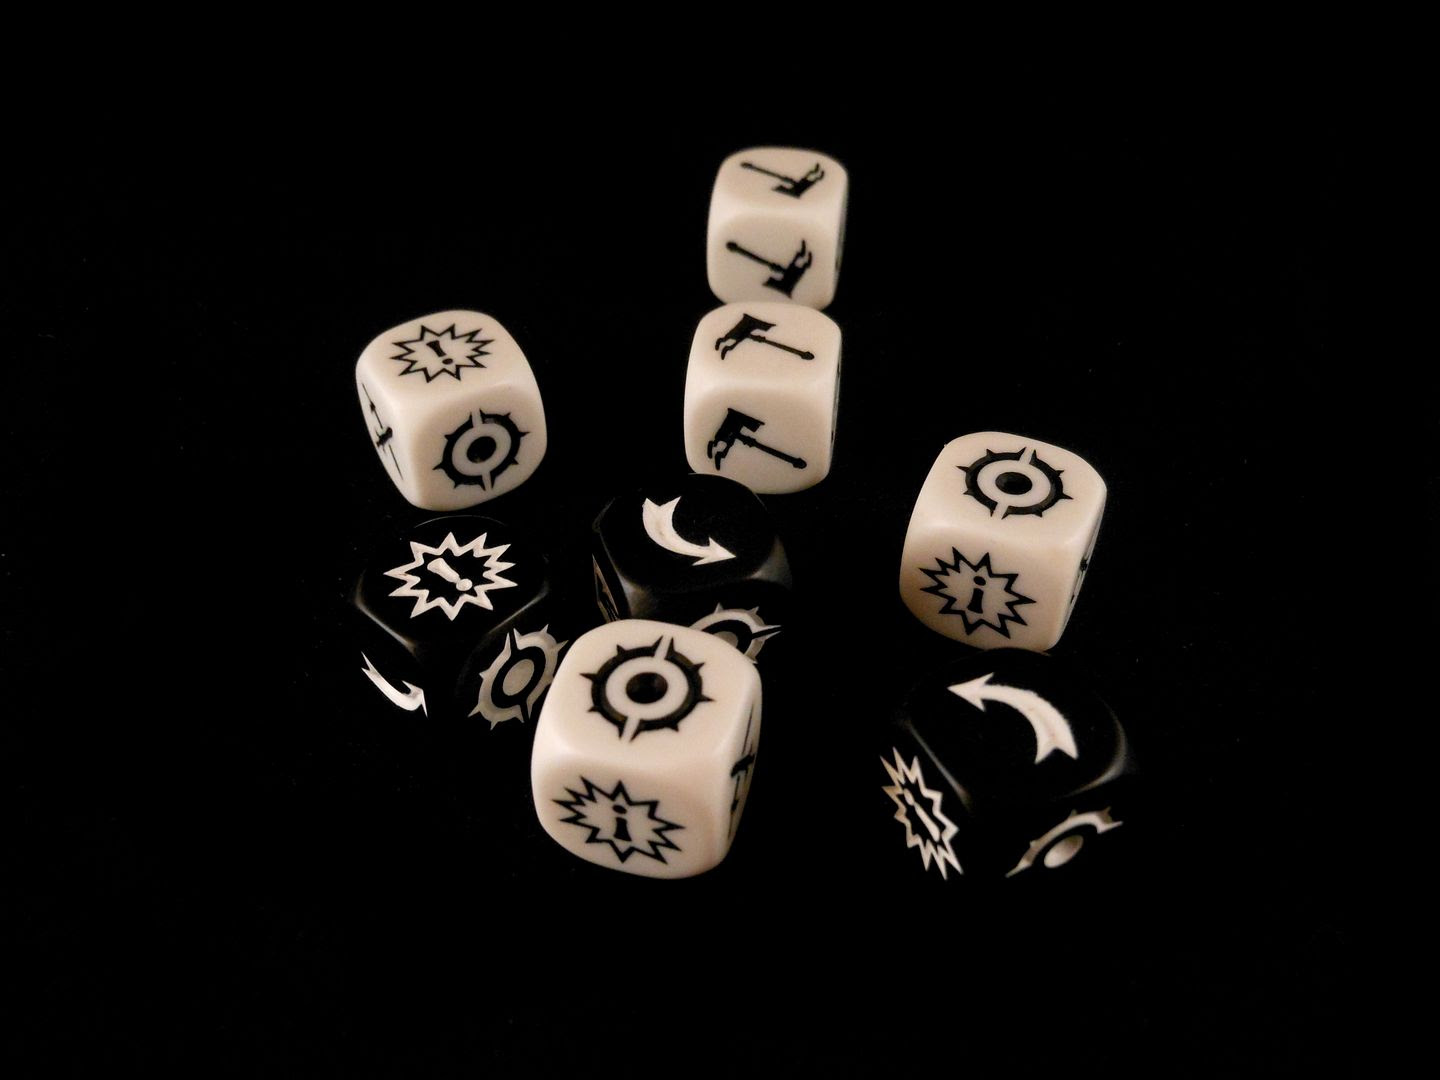 The custom attack and defence dice from Warhammer Underworlds: Shadespire.